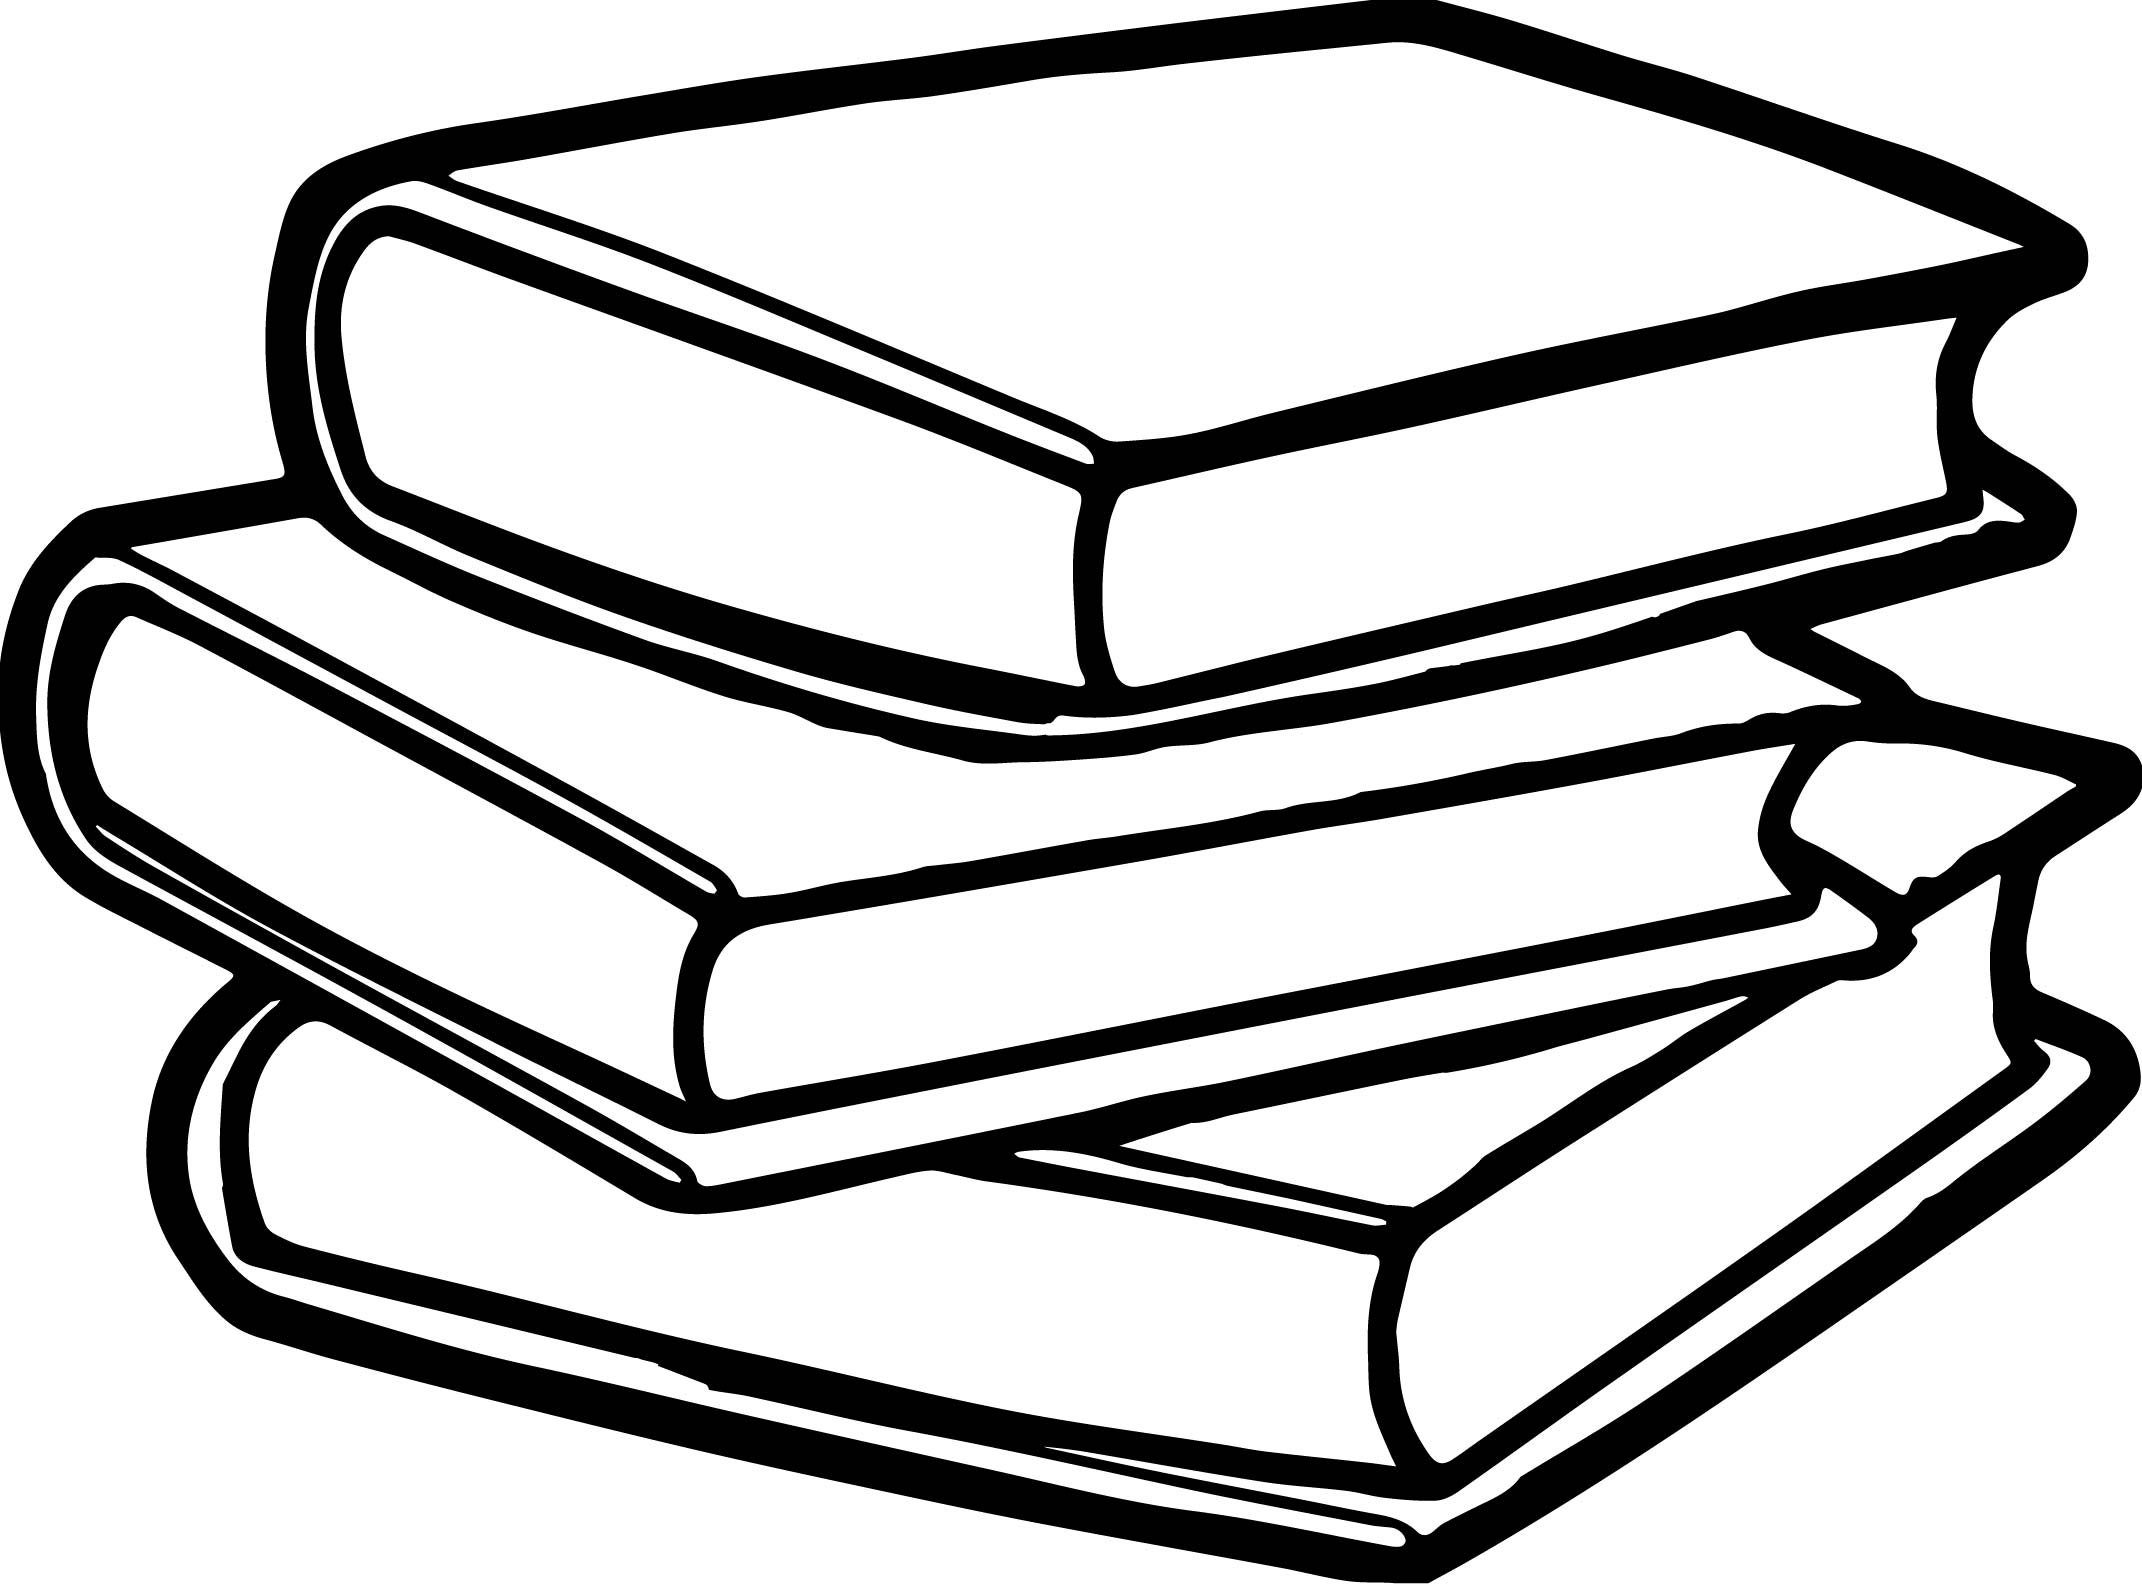 Abc Books Coloring Page Wecoloringpage Books For Coloring